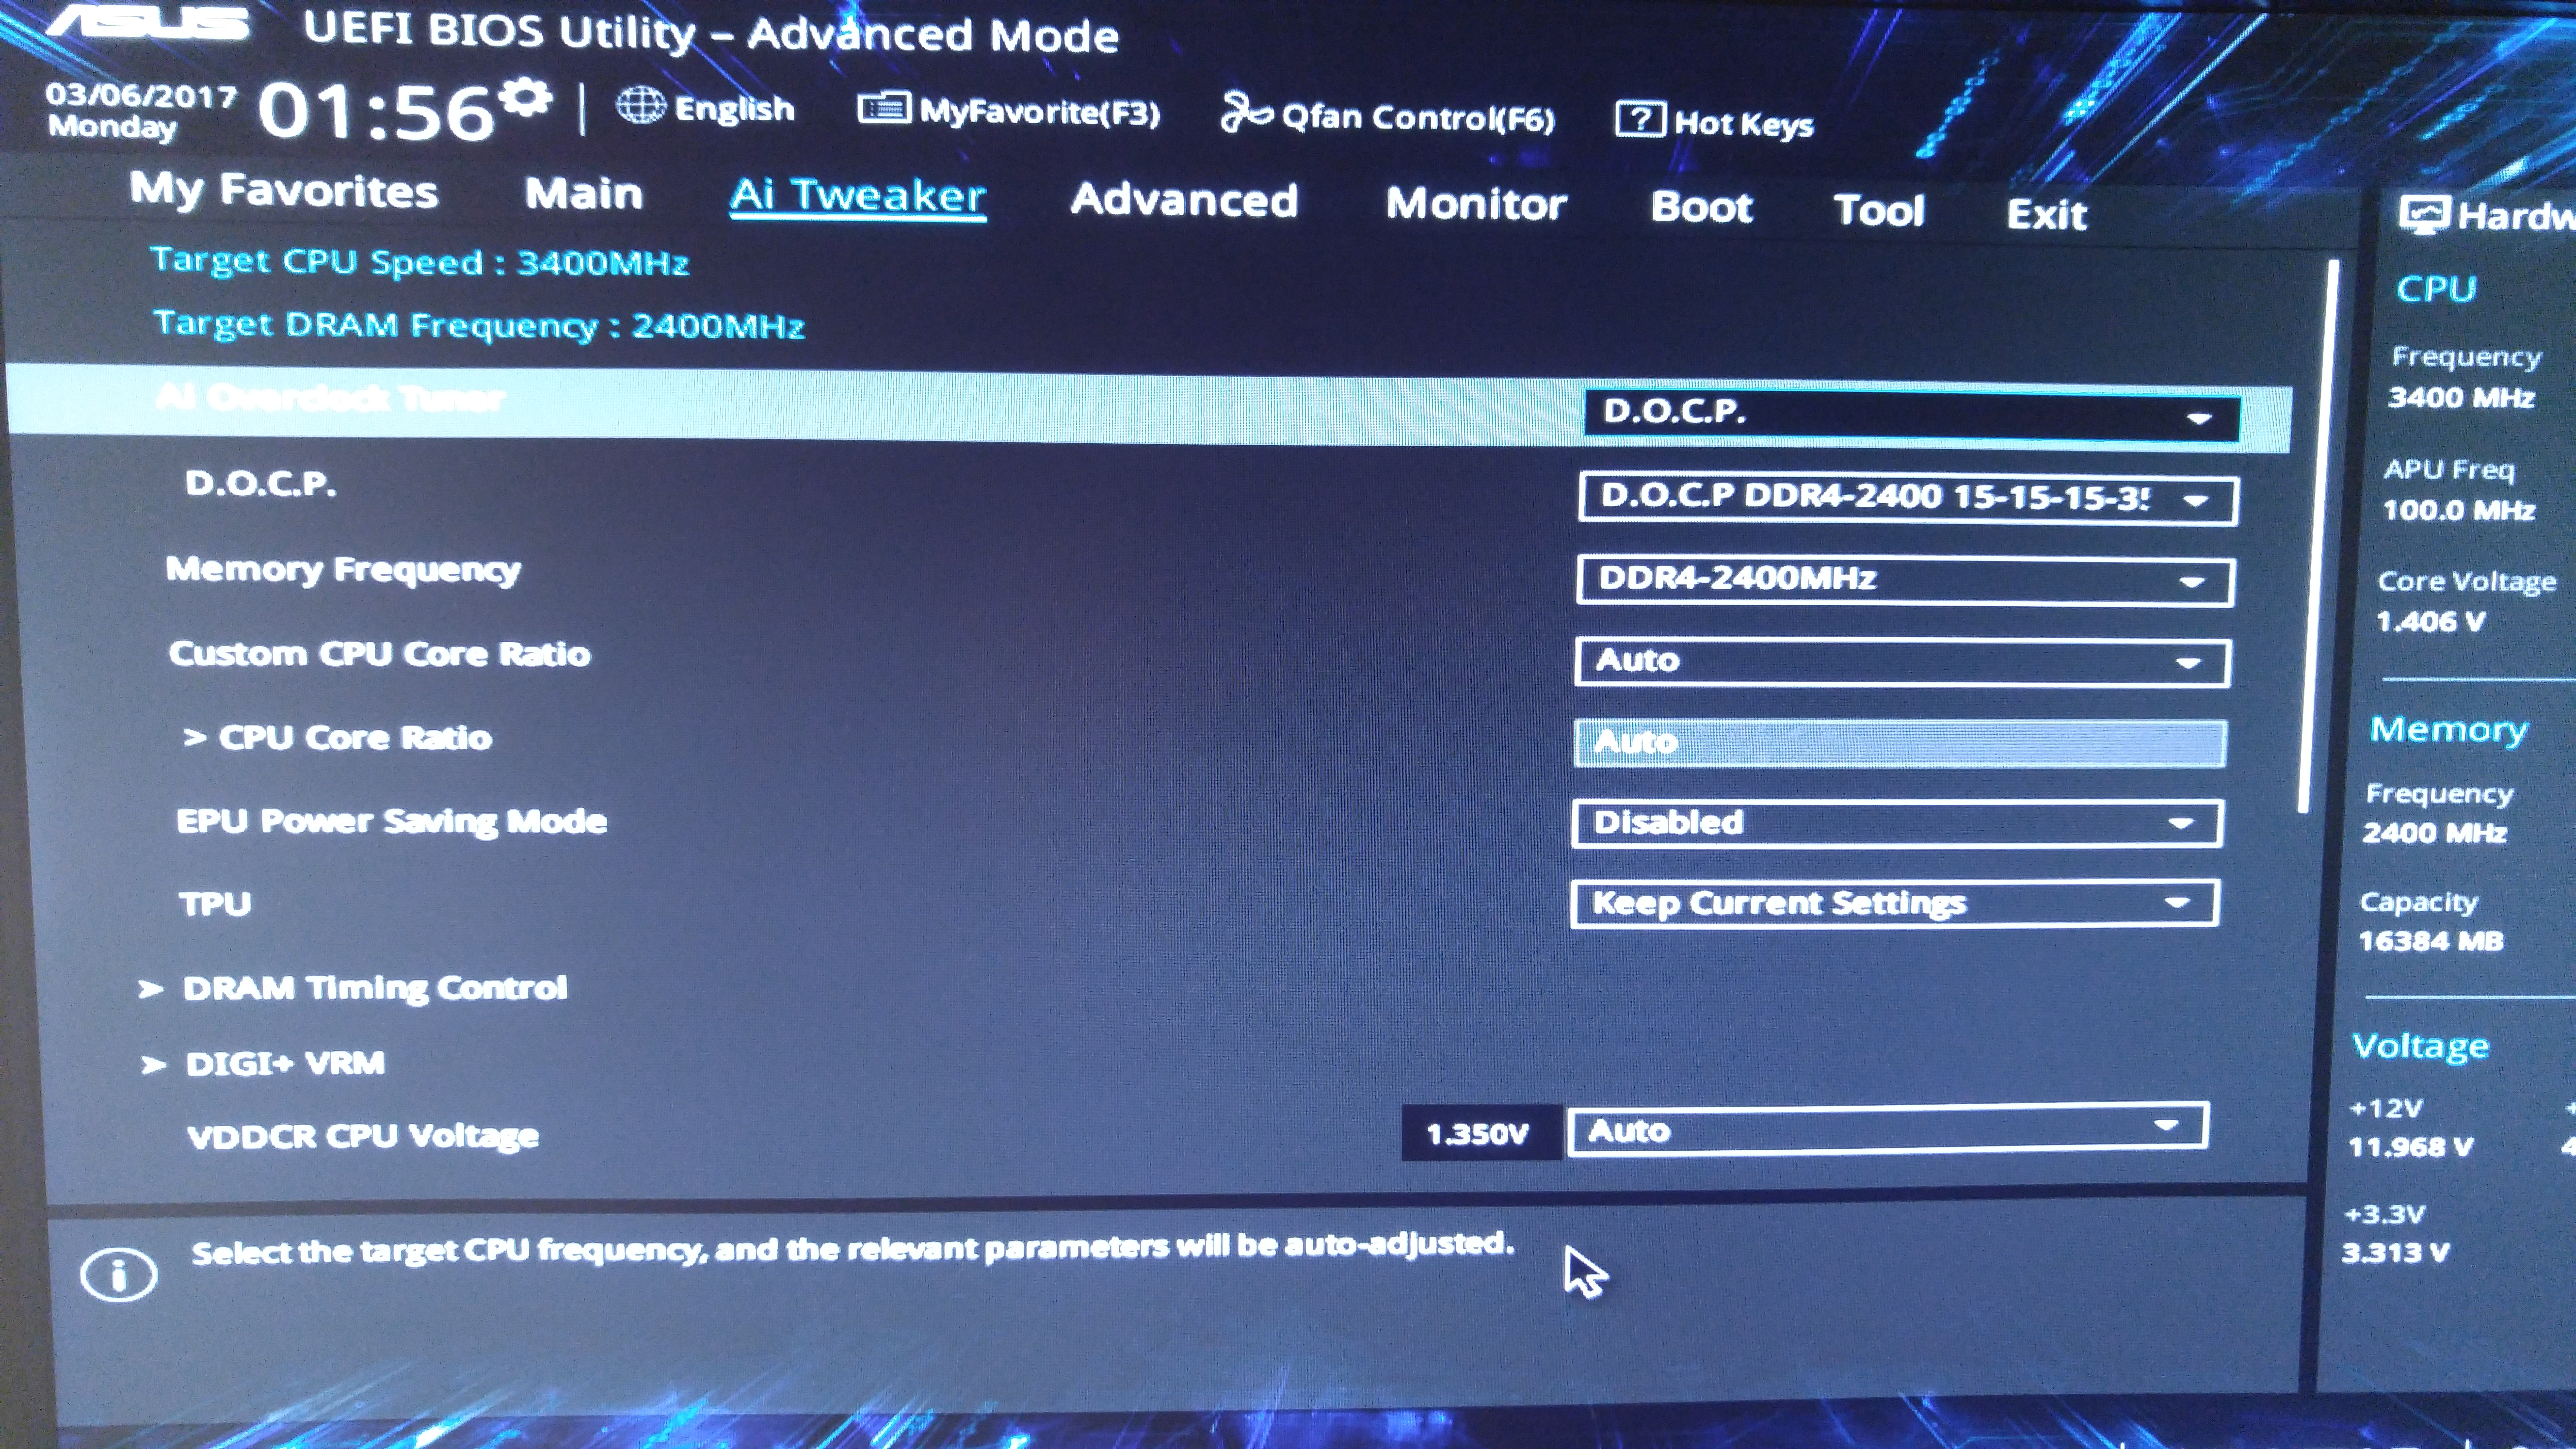 Bios issues on the on Asus X370 Pro Board (3/3/17) - CPUs